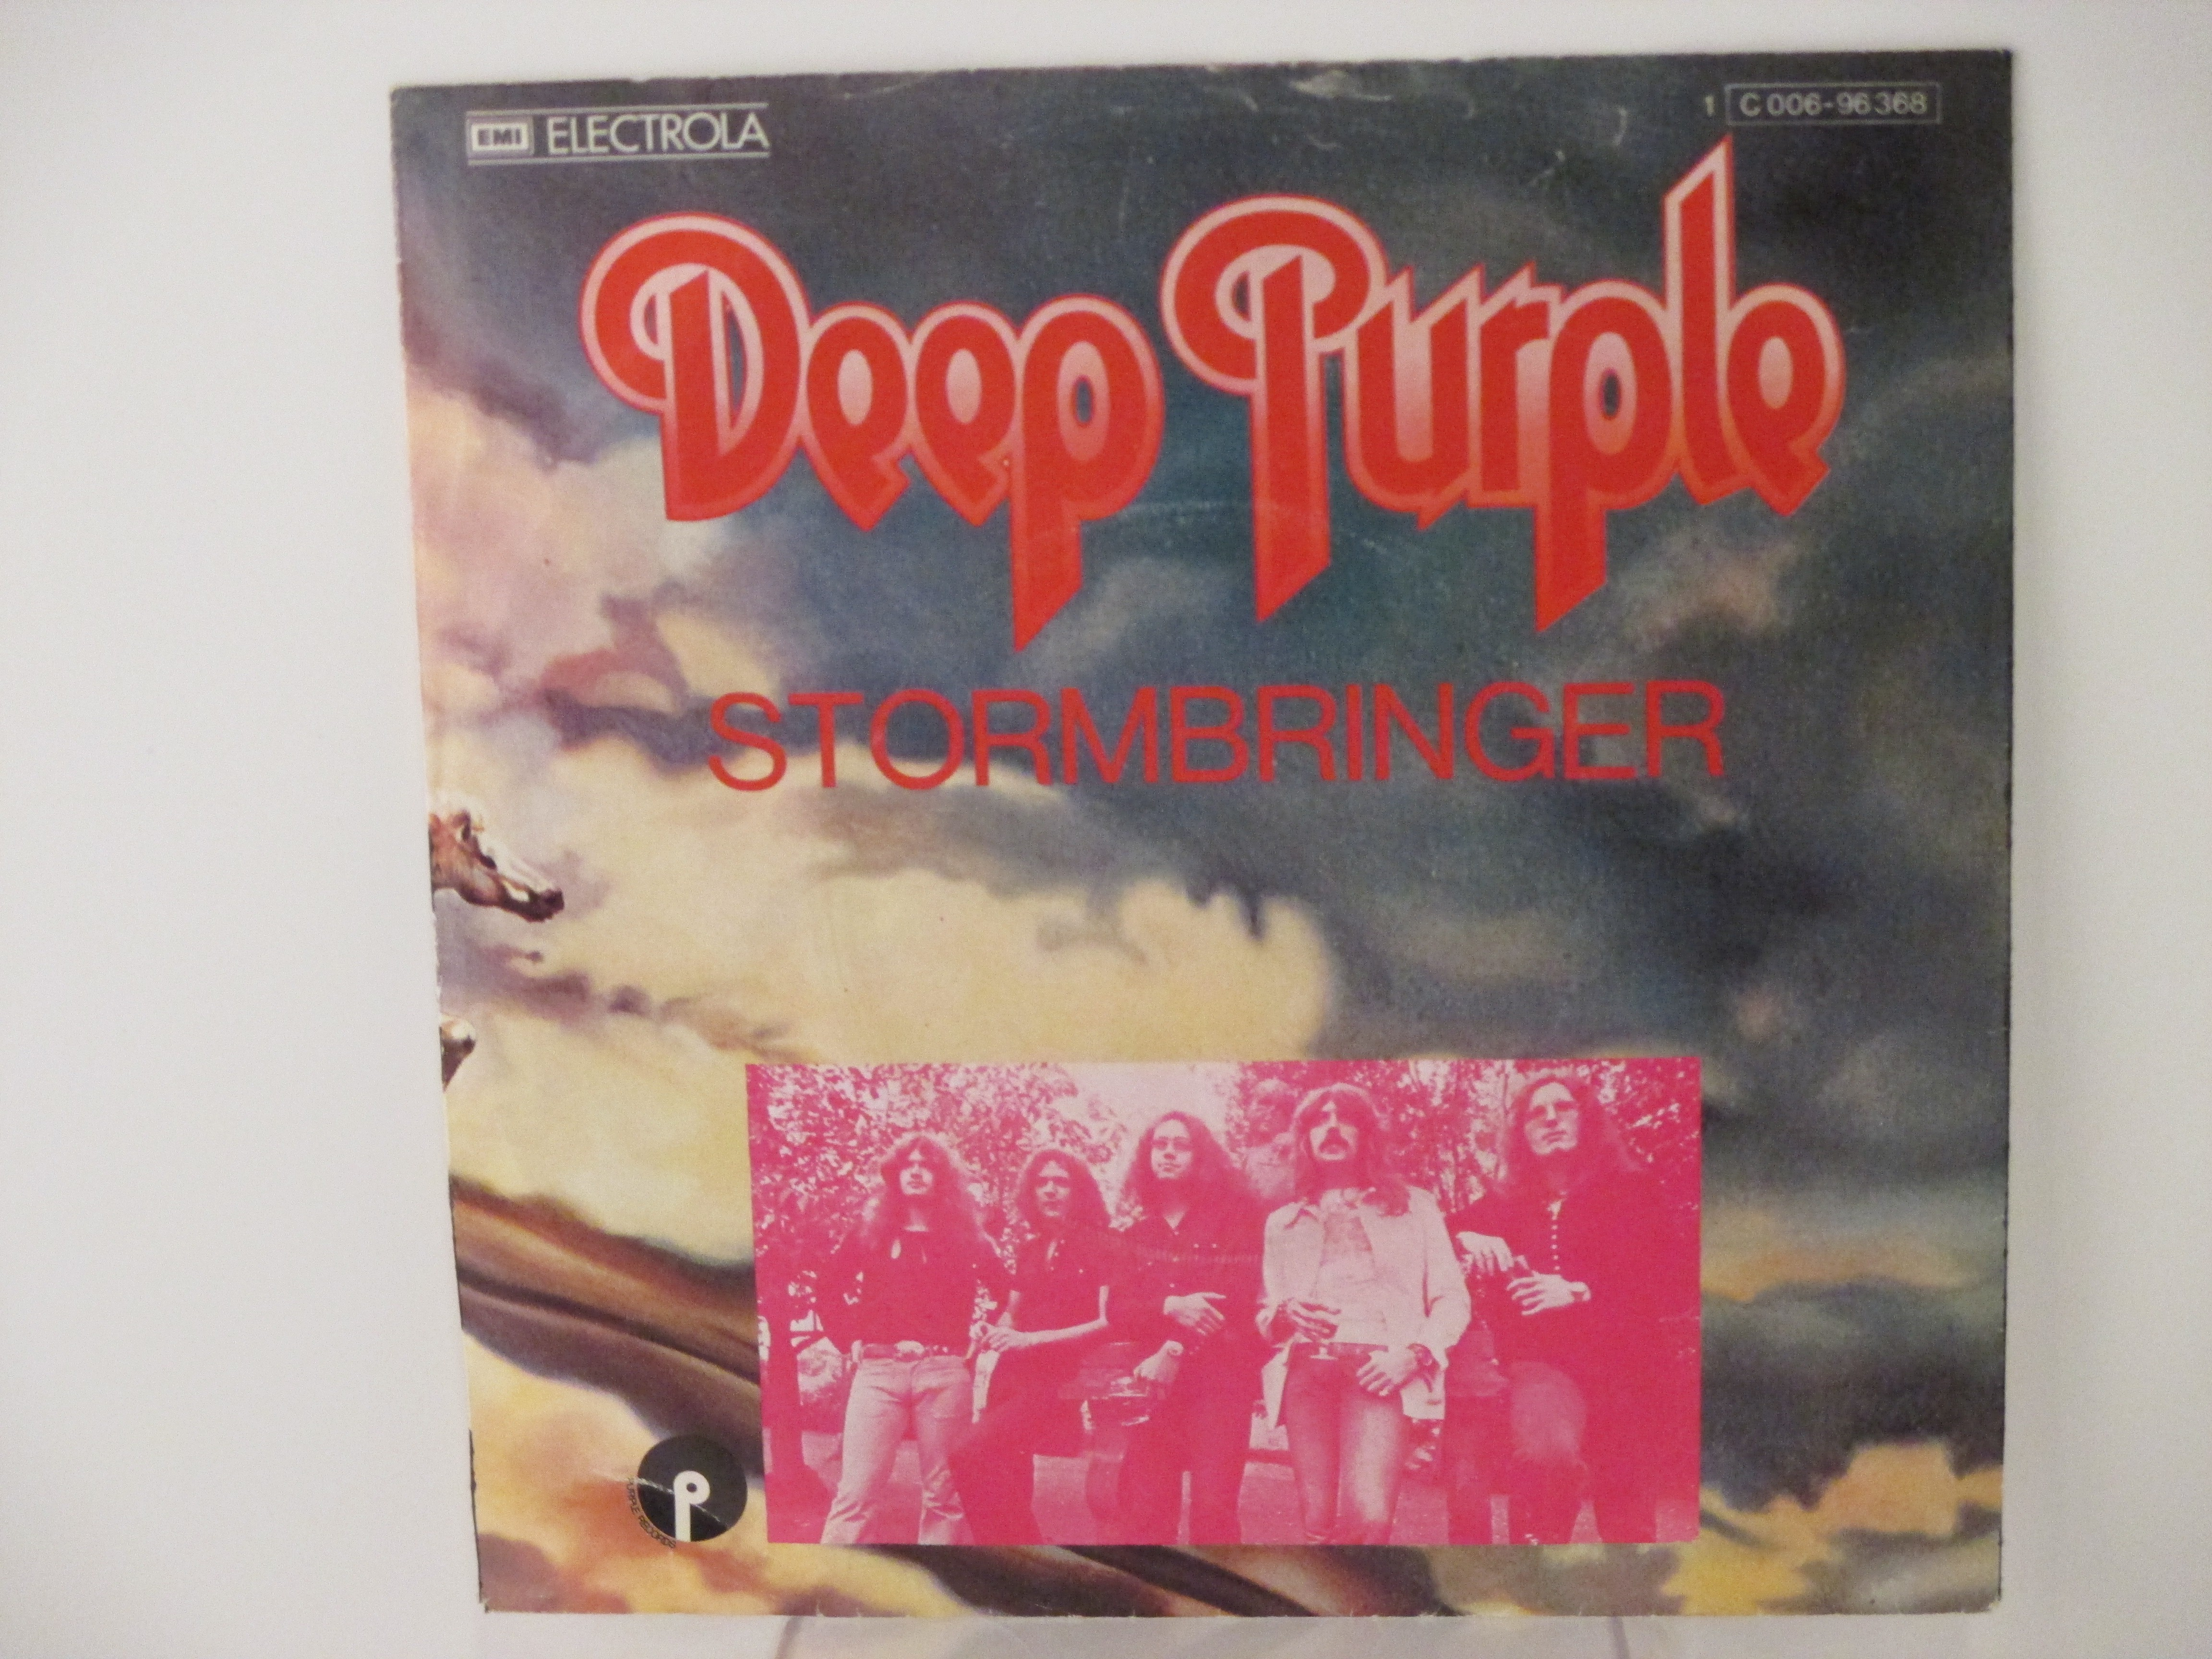 DEEP PURPLE : Stormbringer / Love don't mean a thing